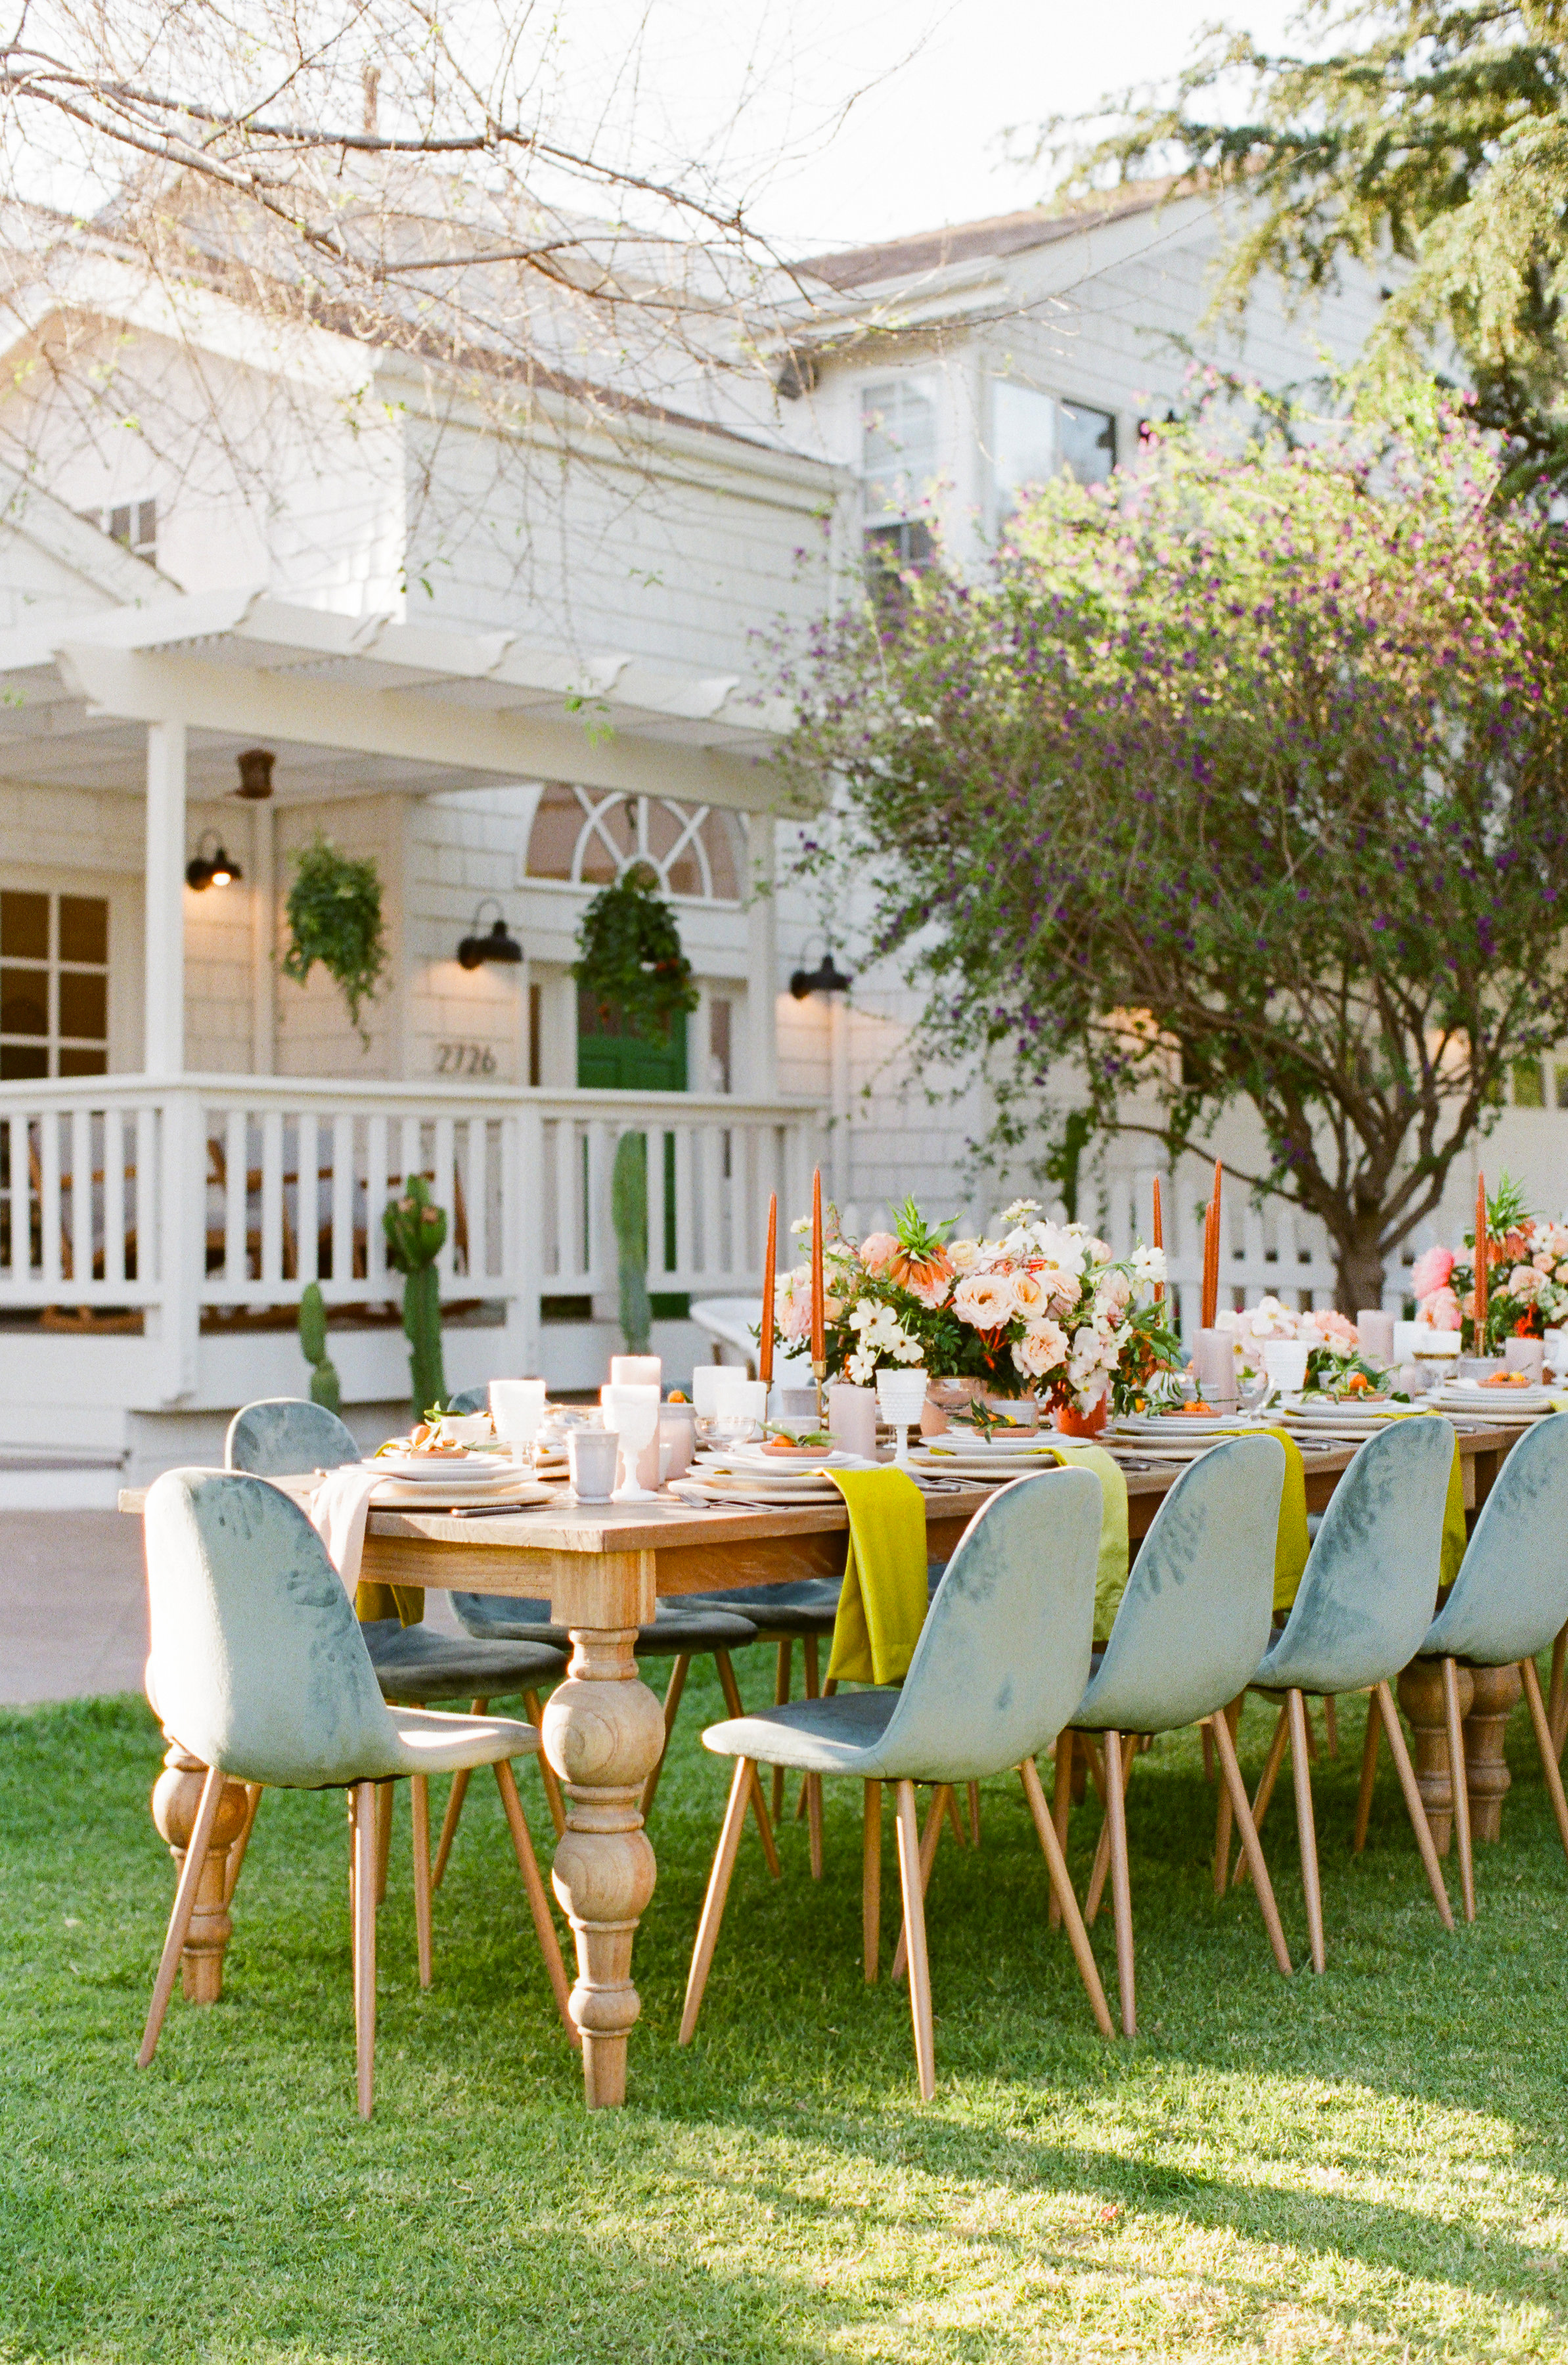 The Outdoor Reception